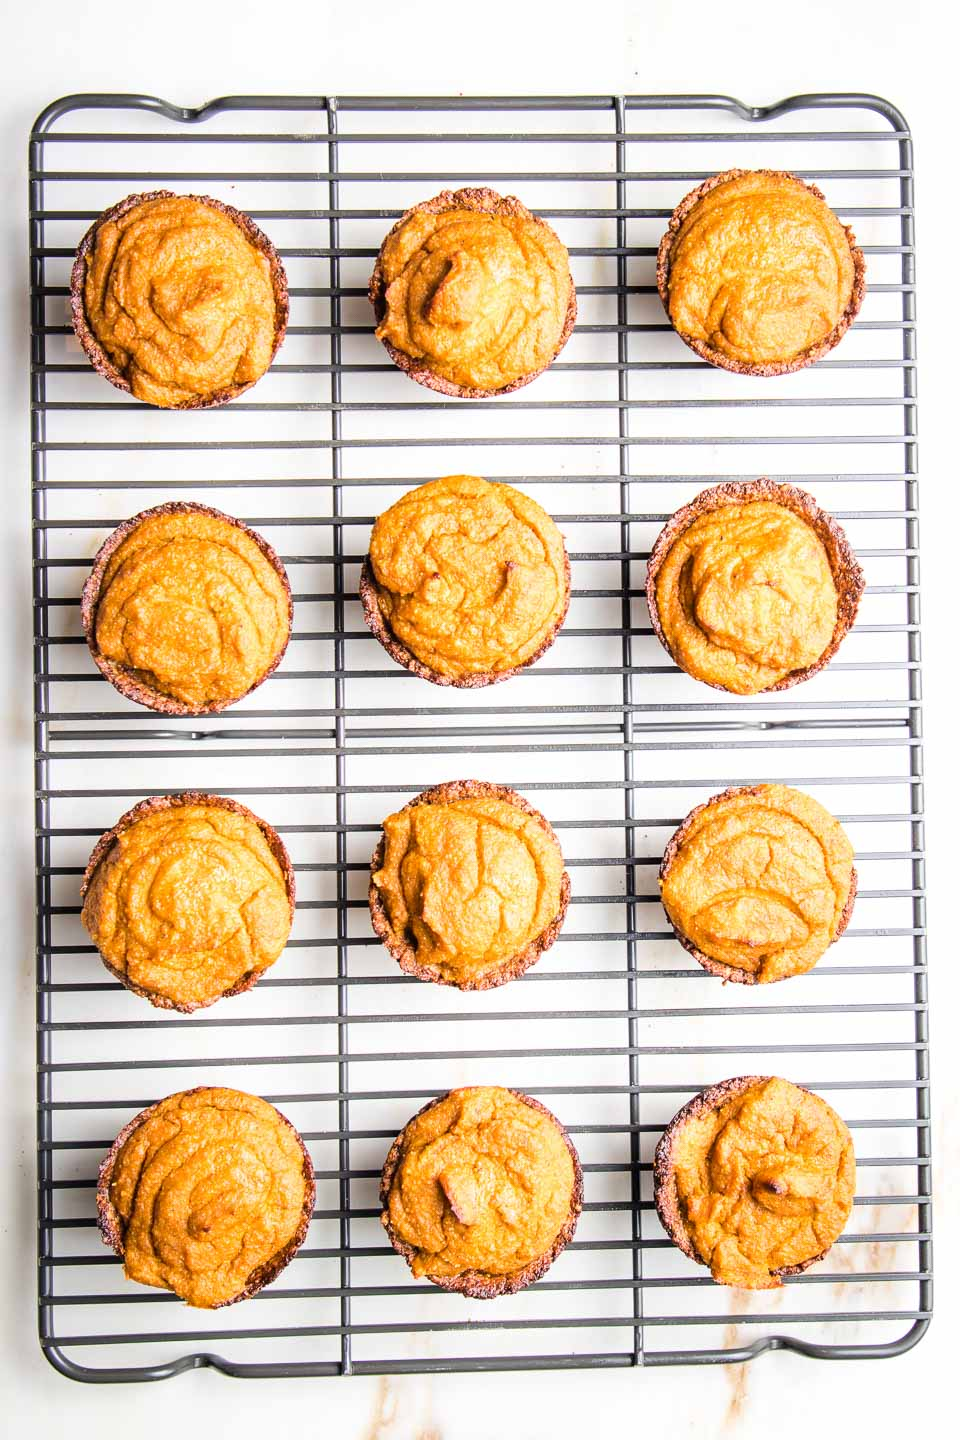 Mini Pumpkin Pies cooling on a wire rack.